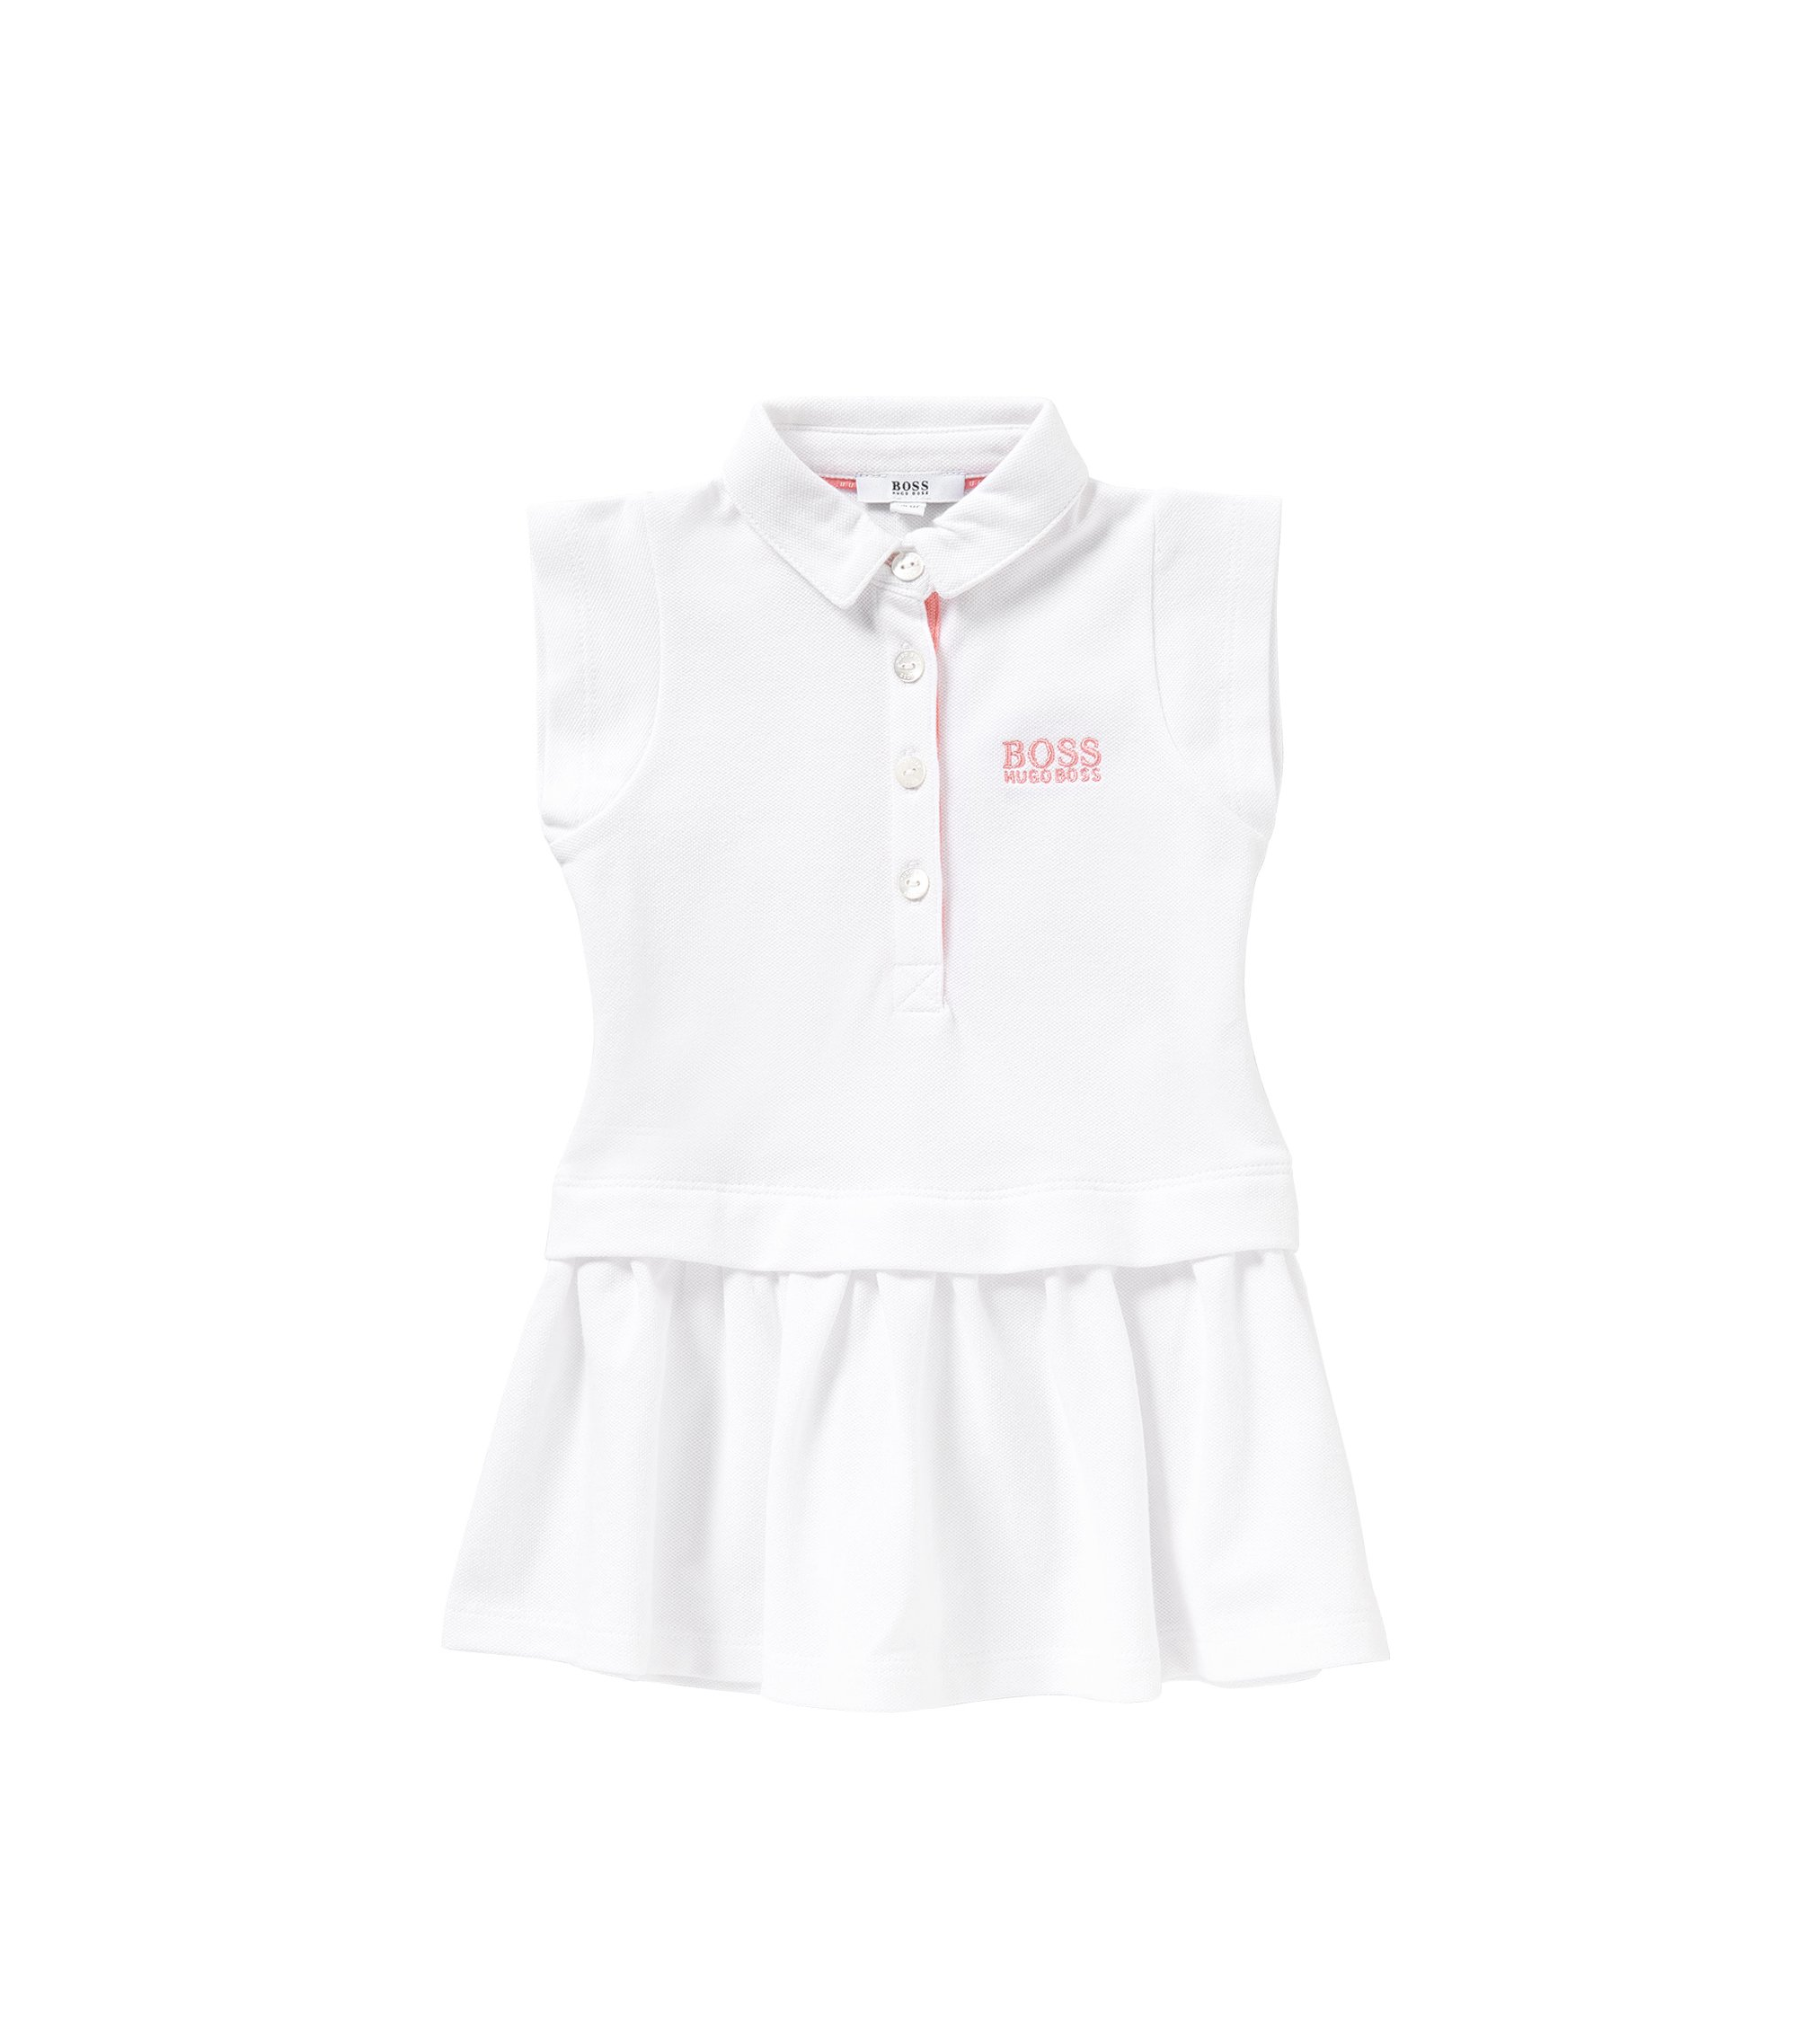 Kids' dress in stretch cotton in polo style: 'J02018', White